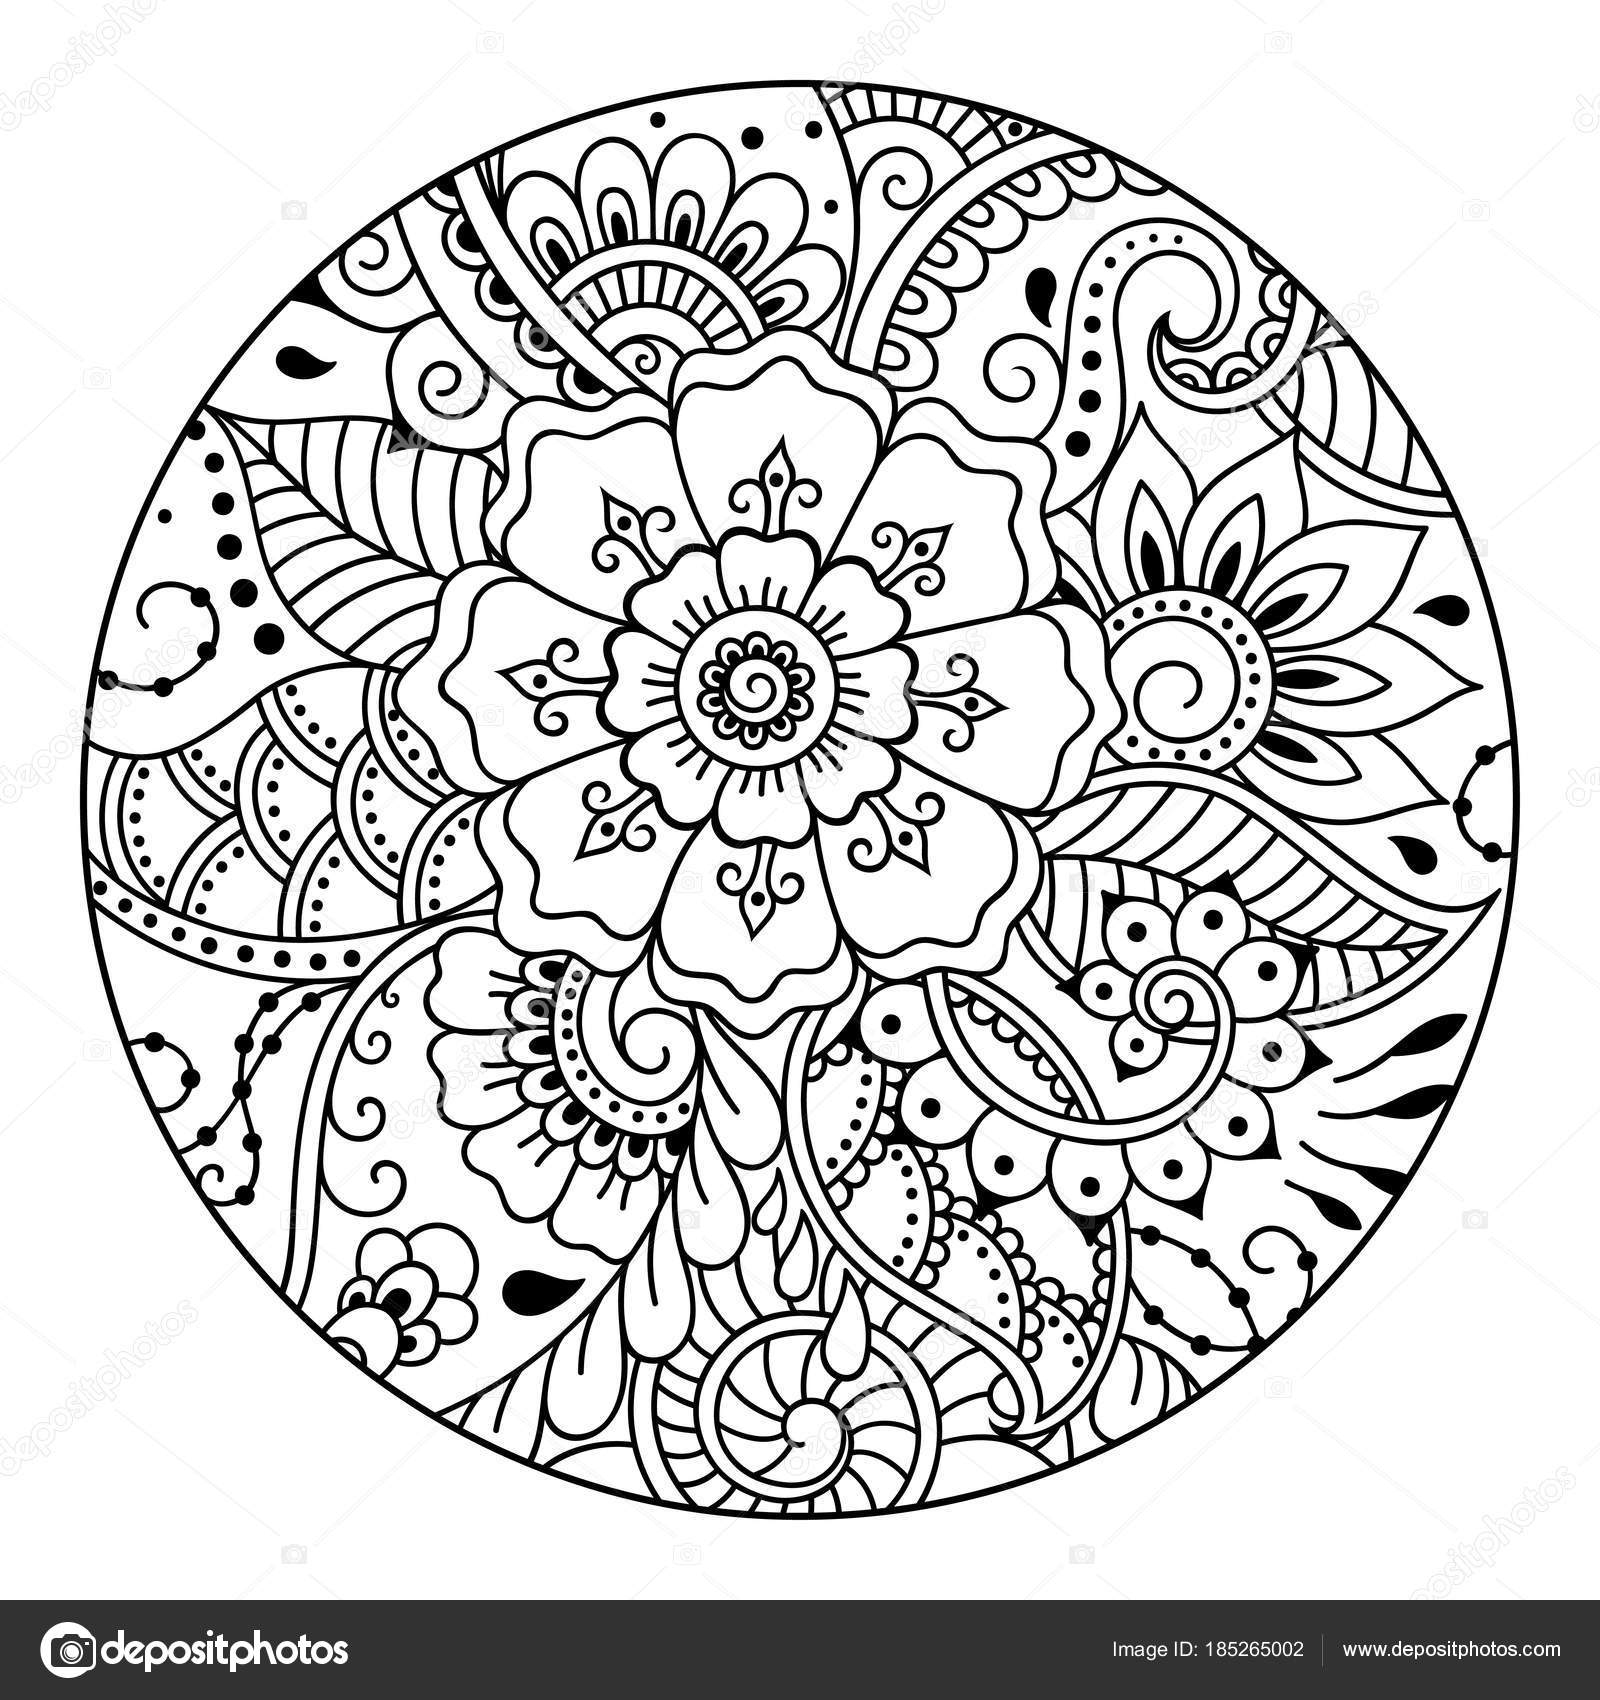 740+ Anti Stress Coloring Book Pictures Free Images